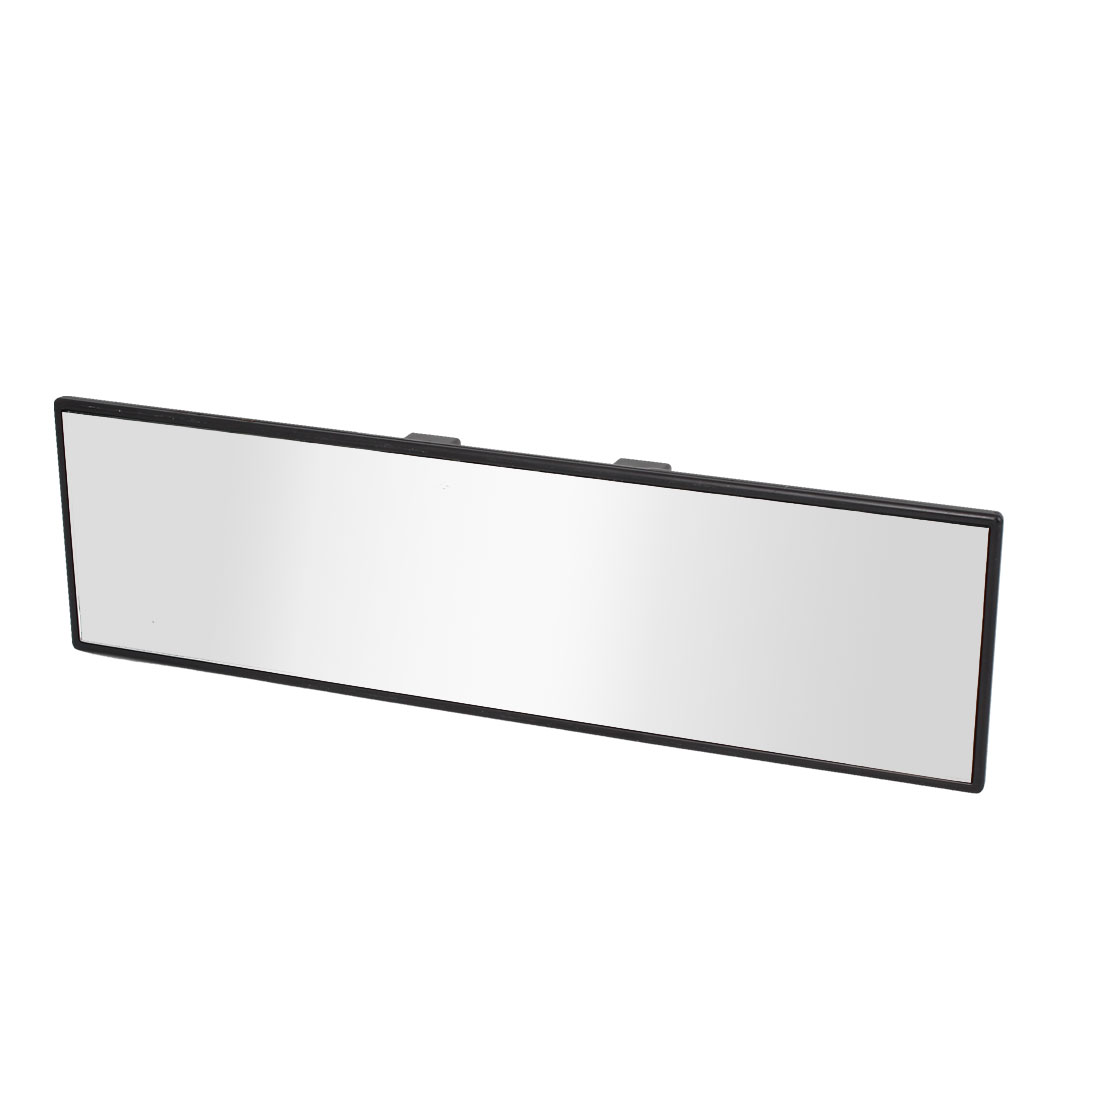 JDM 240mm Wide Anti-Glare Flat Clip On Auto Rearview Mirror